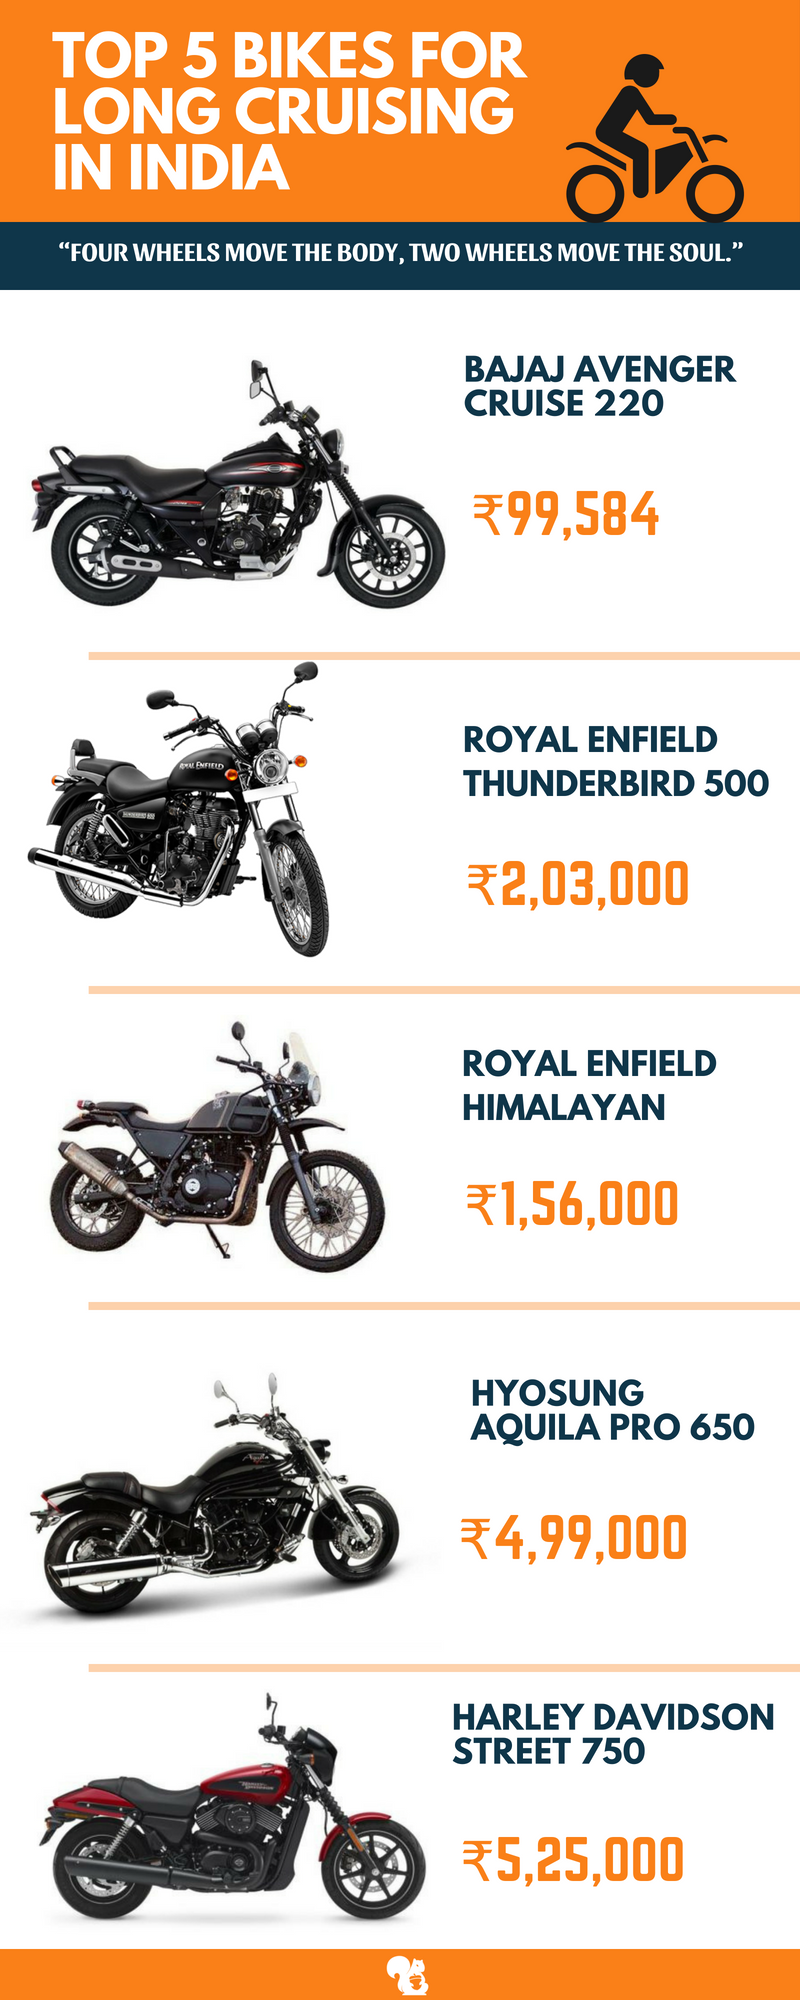 top 5 bikes for long cruising in india